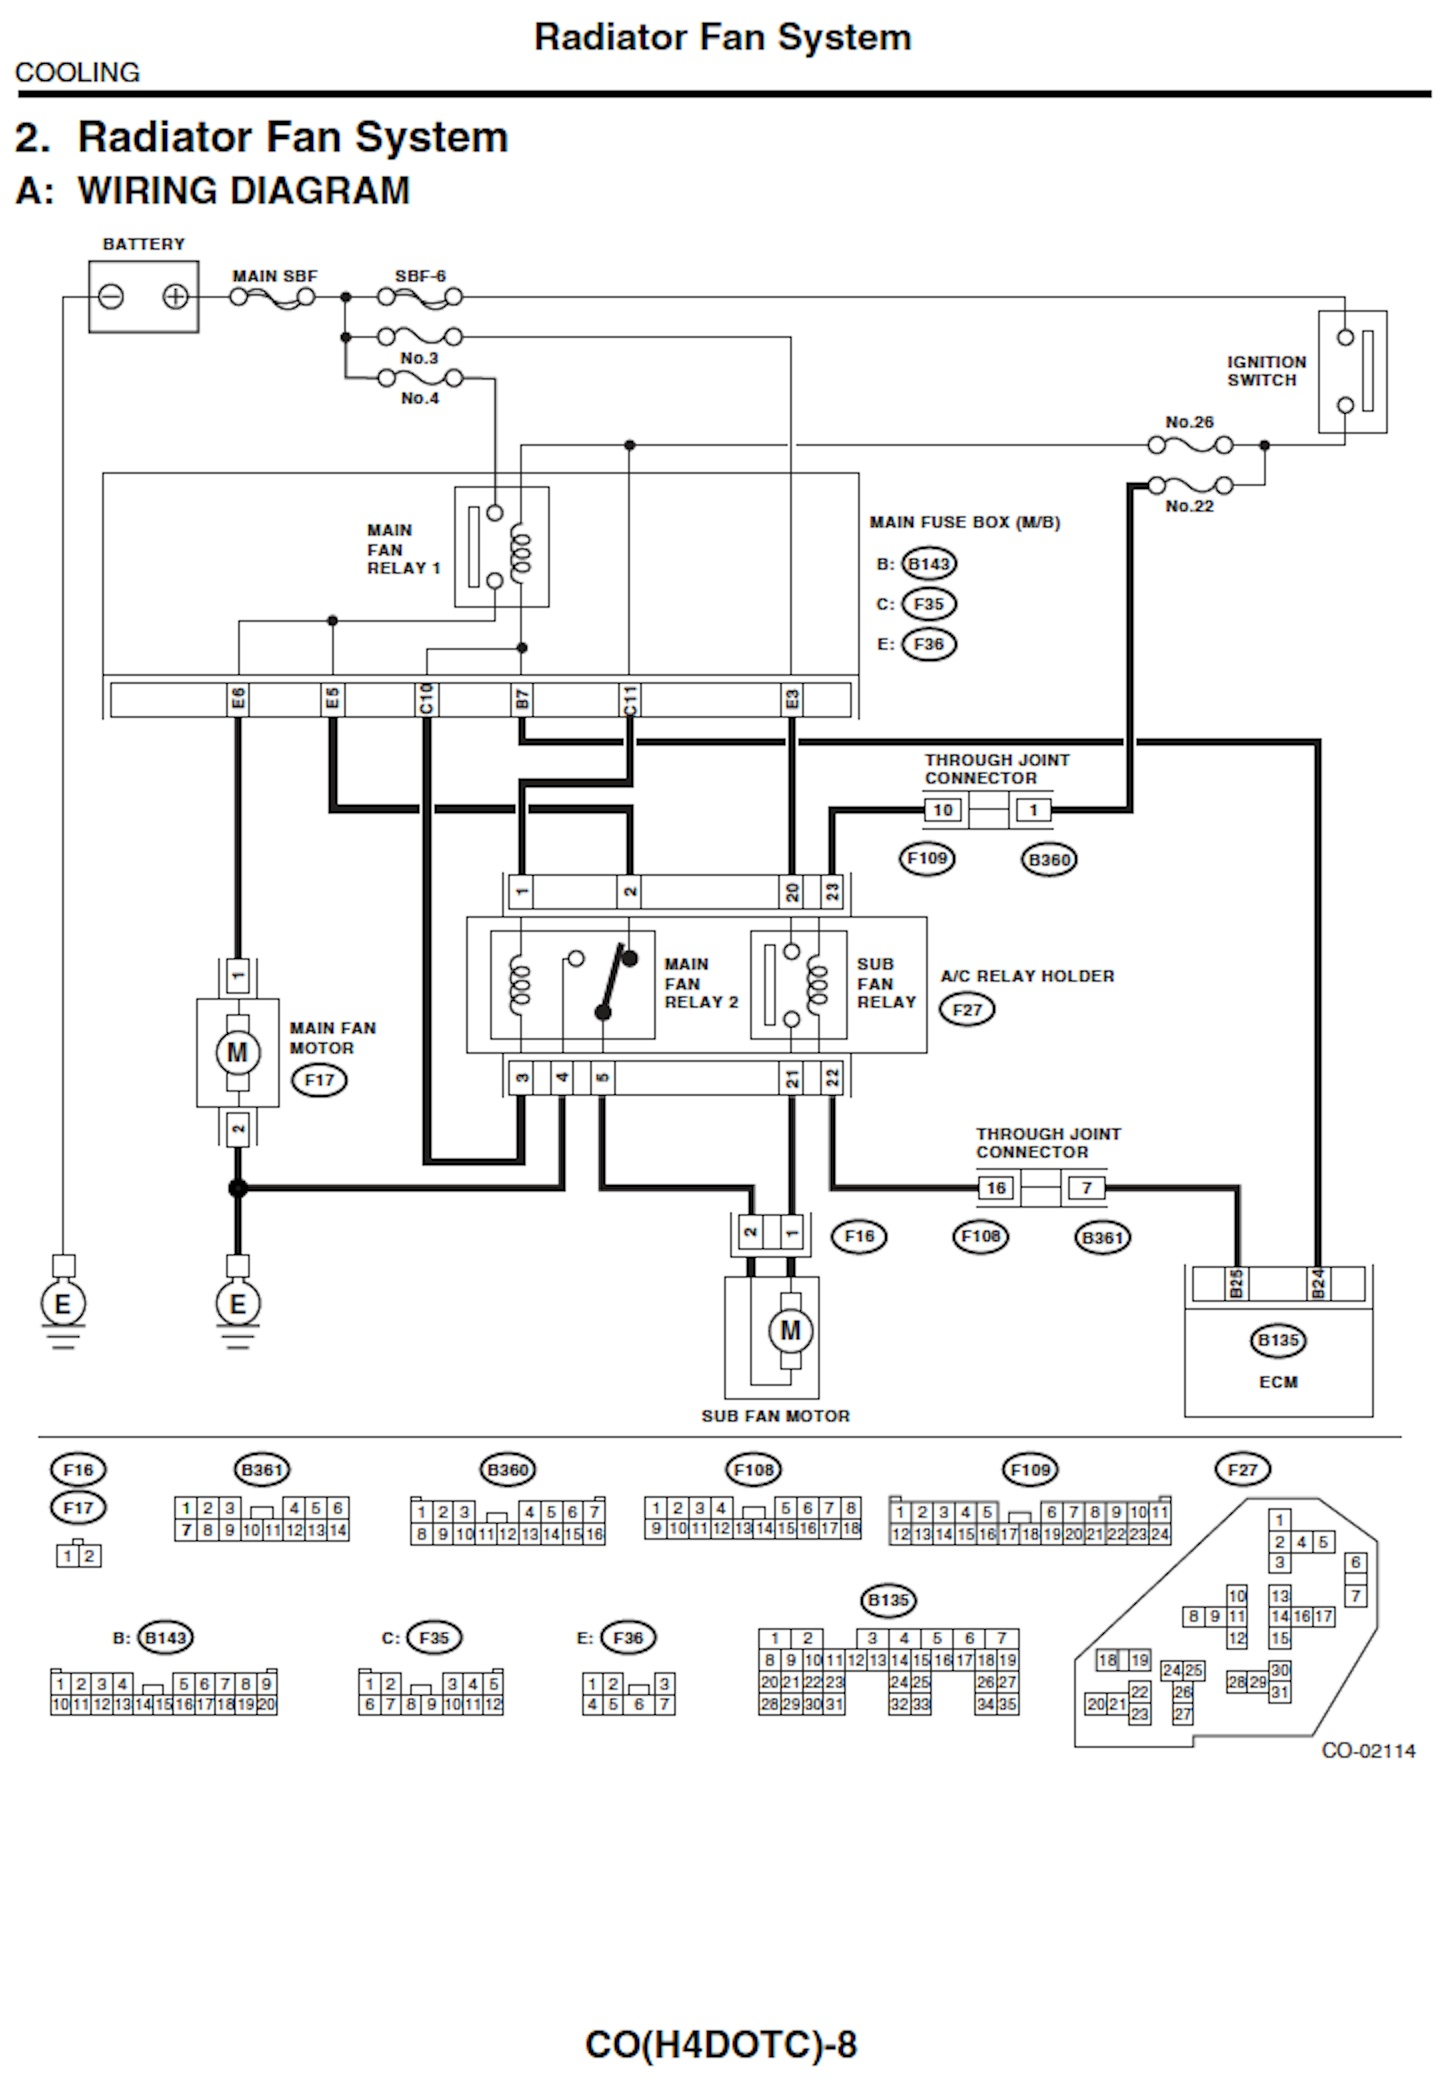 similiar cooling fan wiring diagram keywords cooling fan wiring diagram furthermore cooling fan wiring diagram